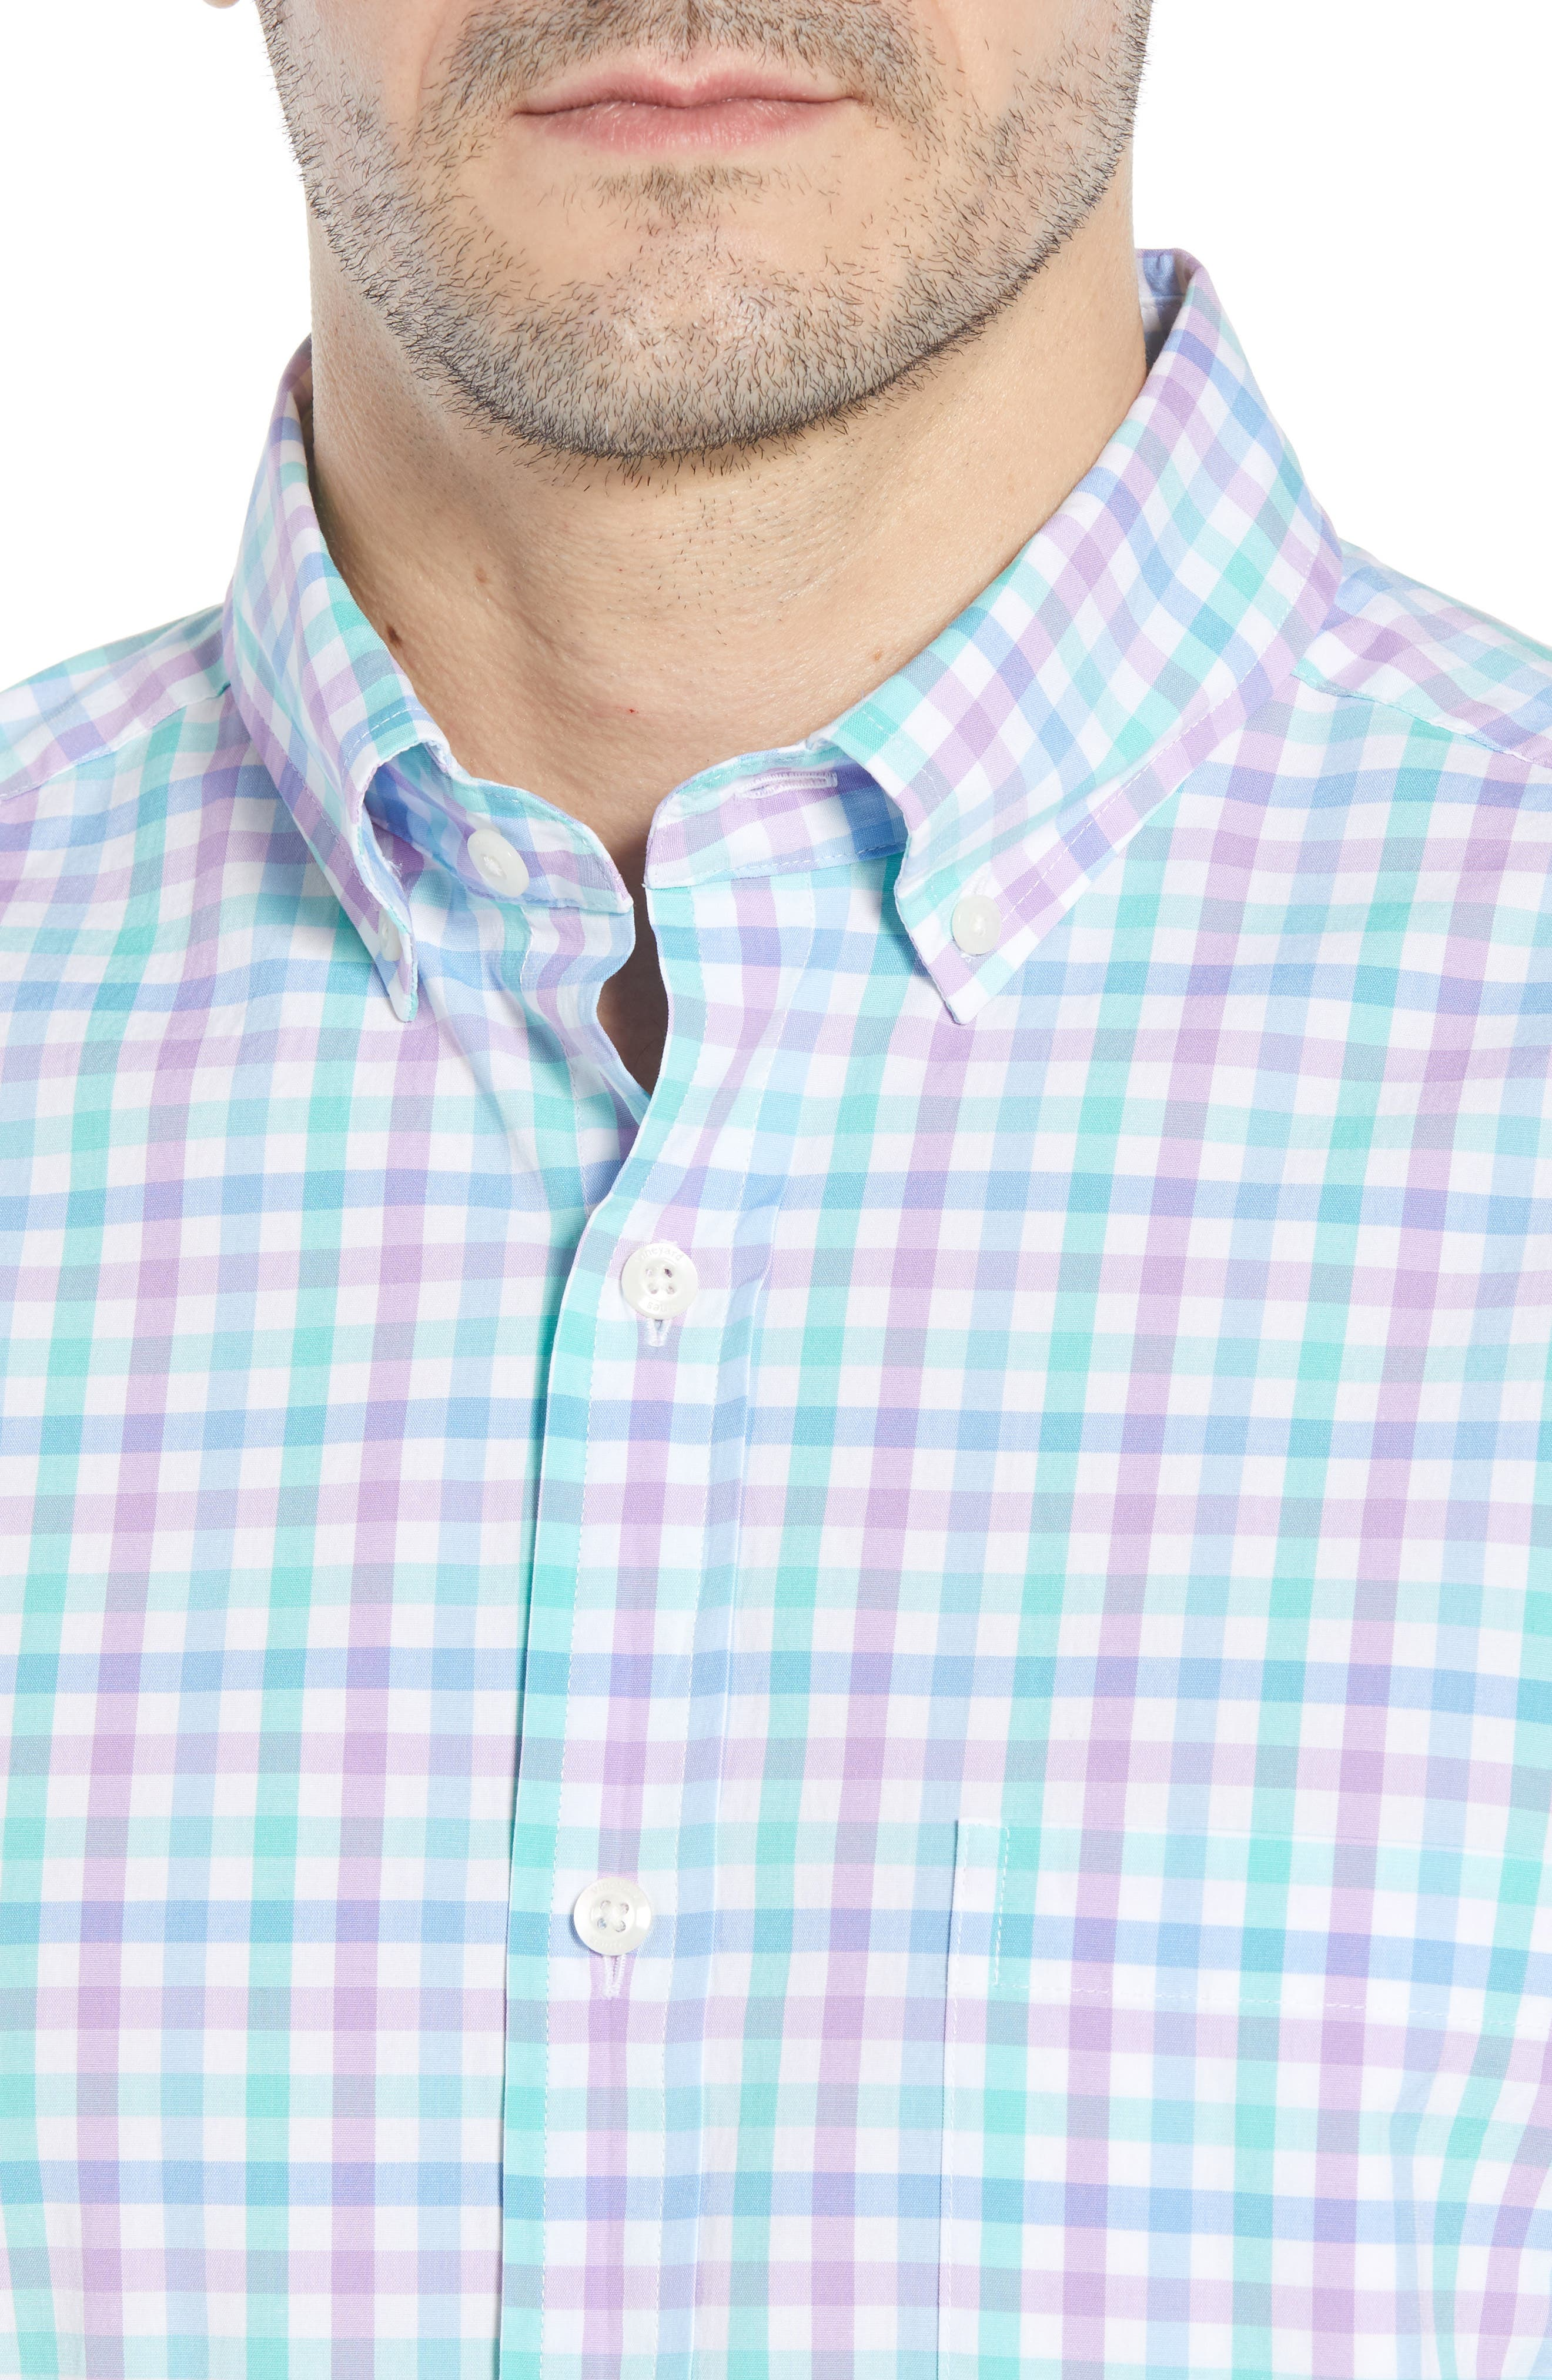 VINEYARD VINES,                             Murray Classic Fit Stretch Check Sport Shirt,                             Alternate thumbnail 4, color,                             526